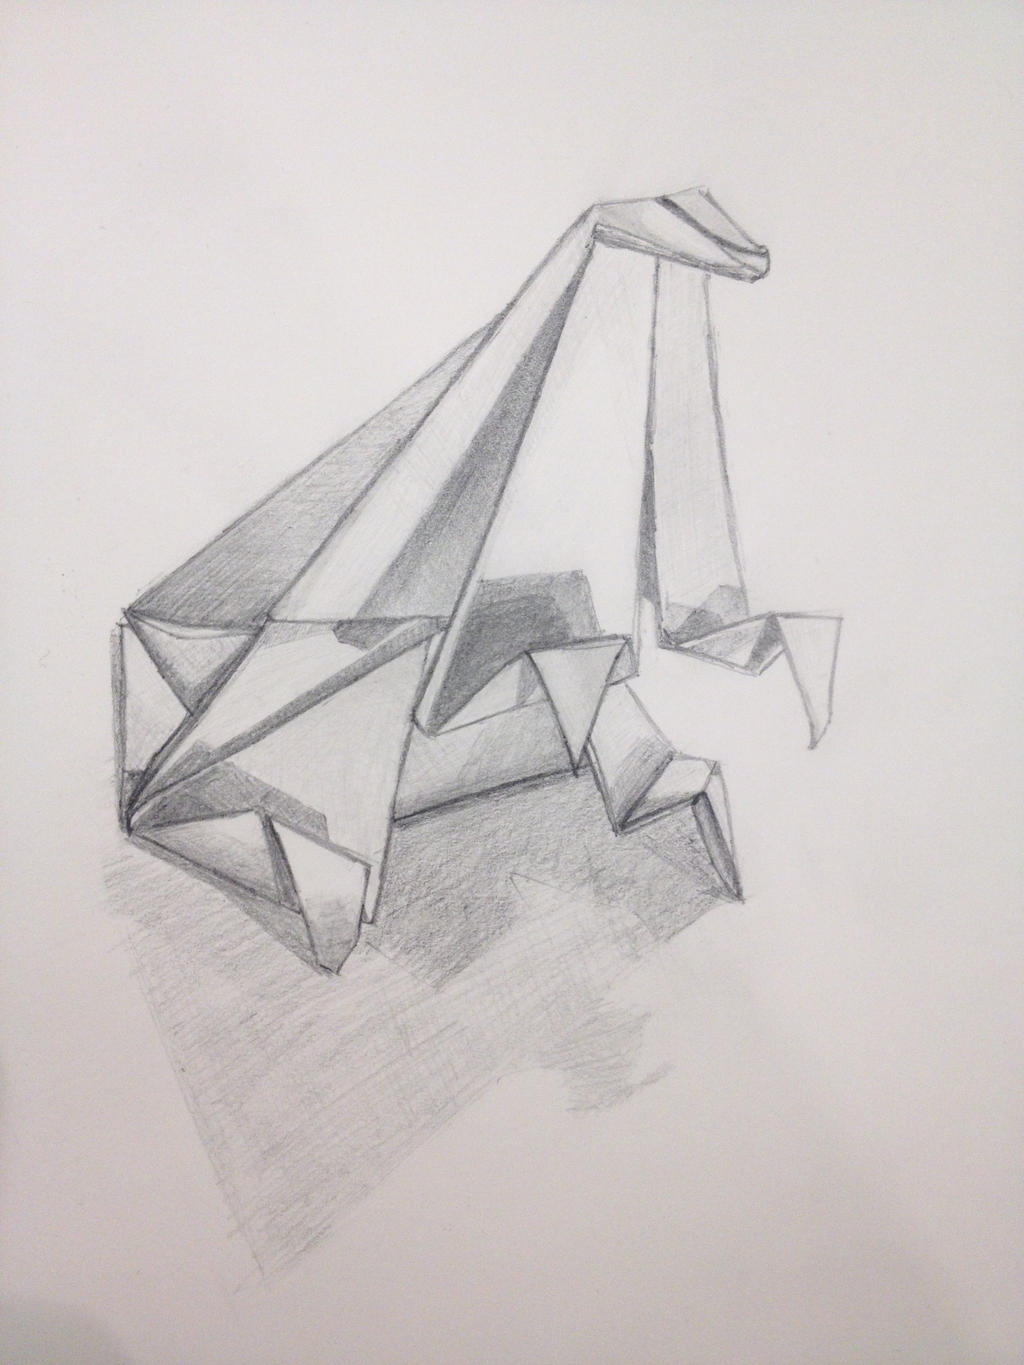 Origami Drawing by J0mm on DeviantArt - photo#7